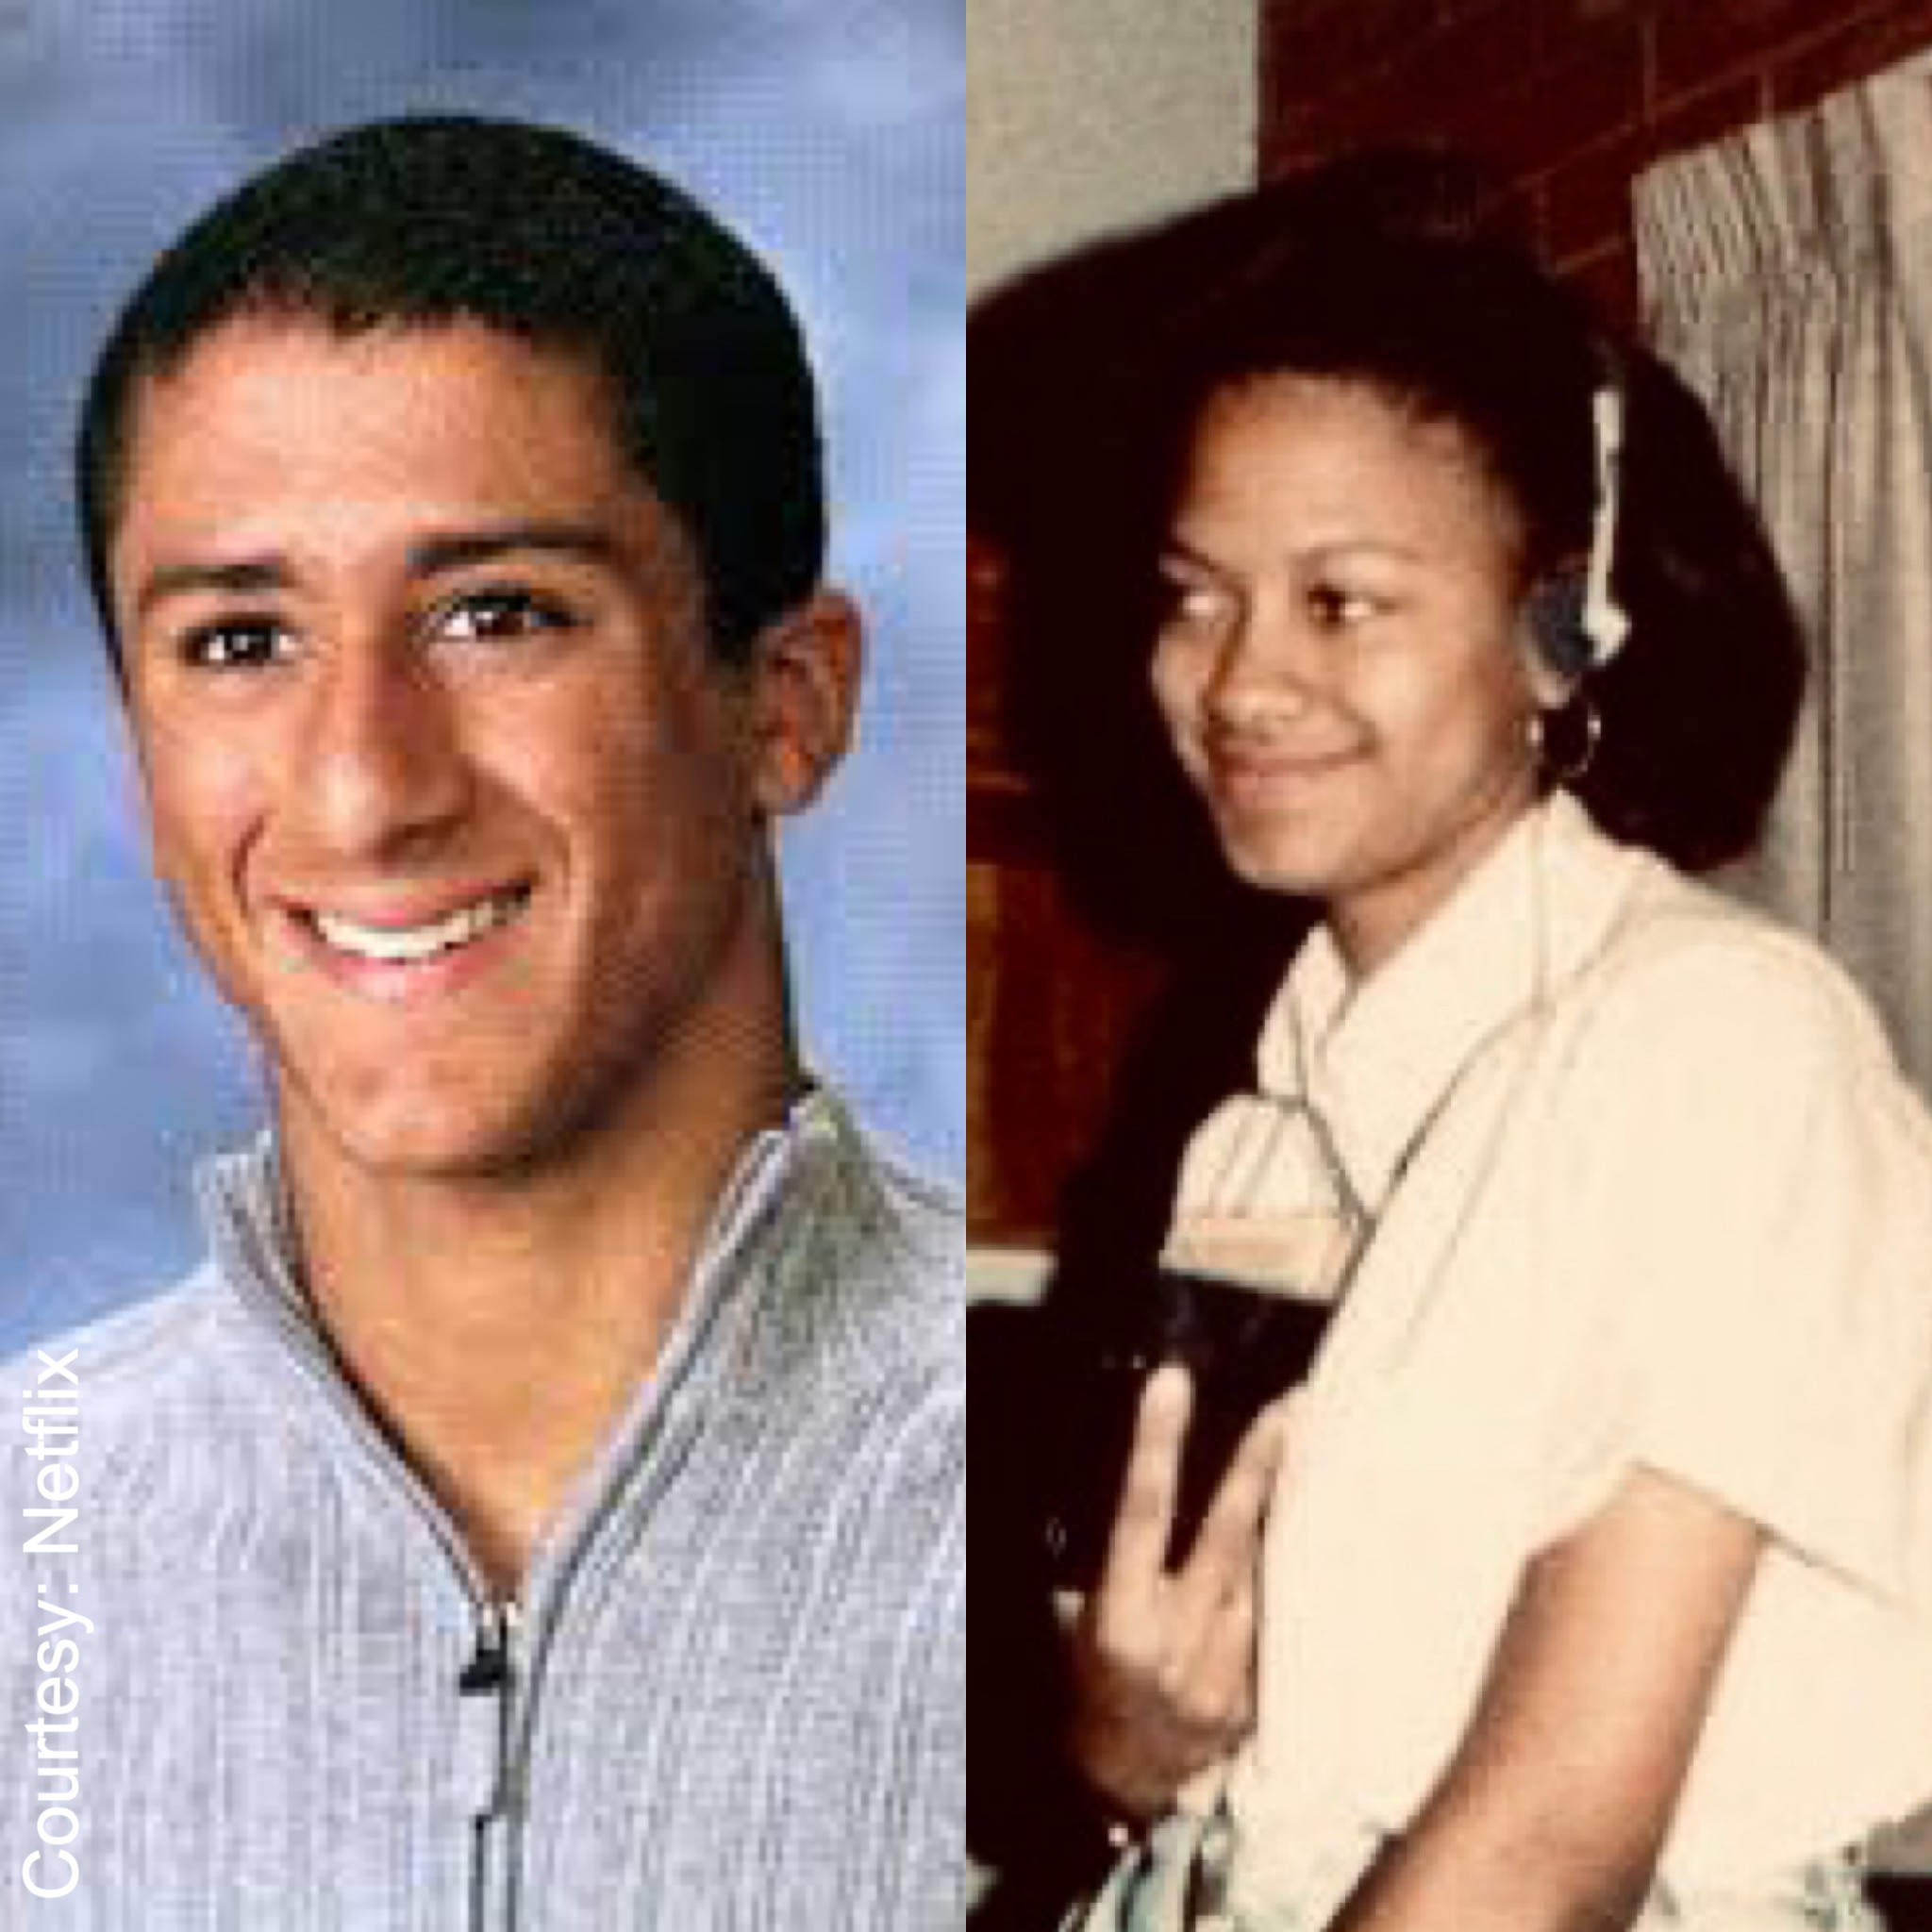 Colin Kaepernick and Ava DuVernay's high school photos